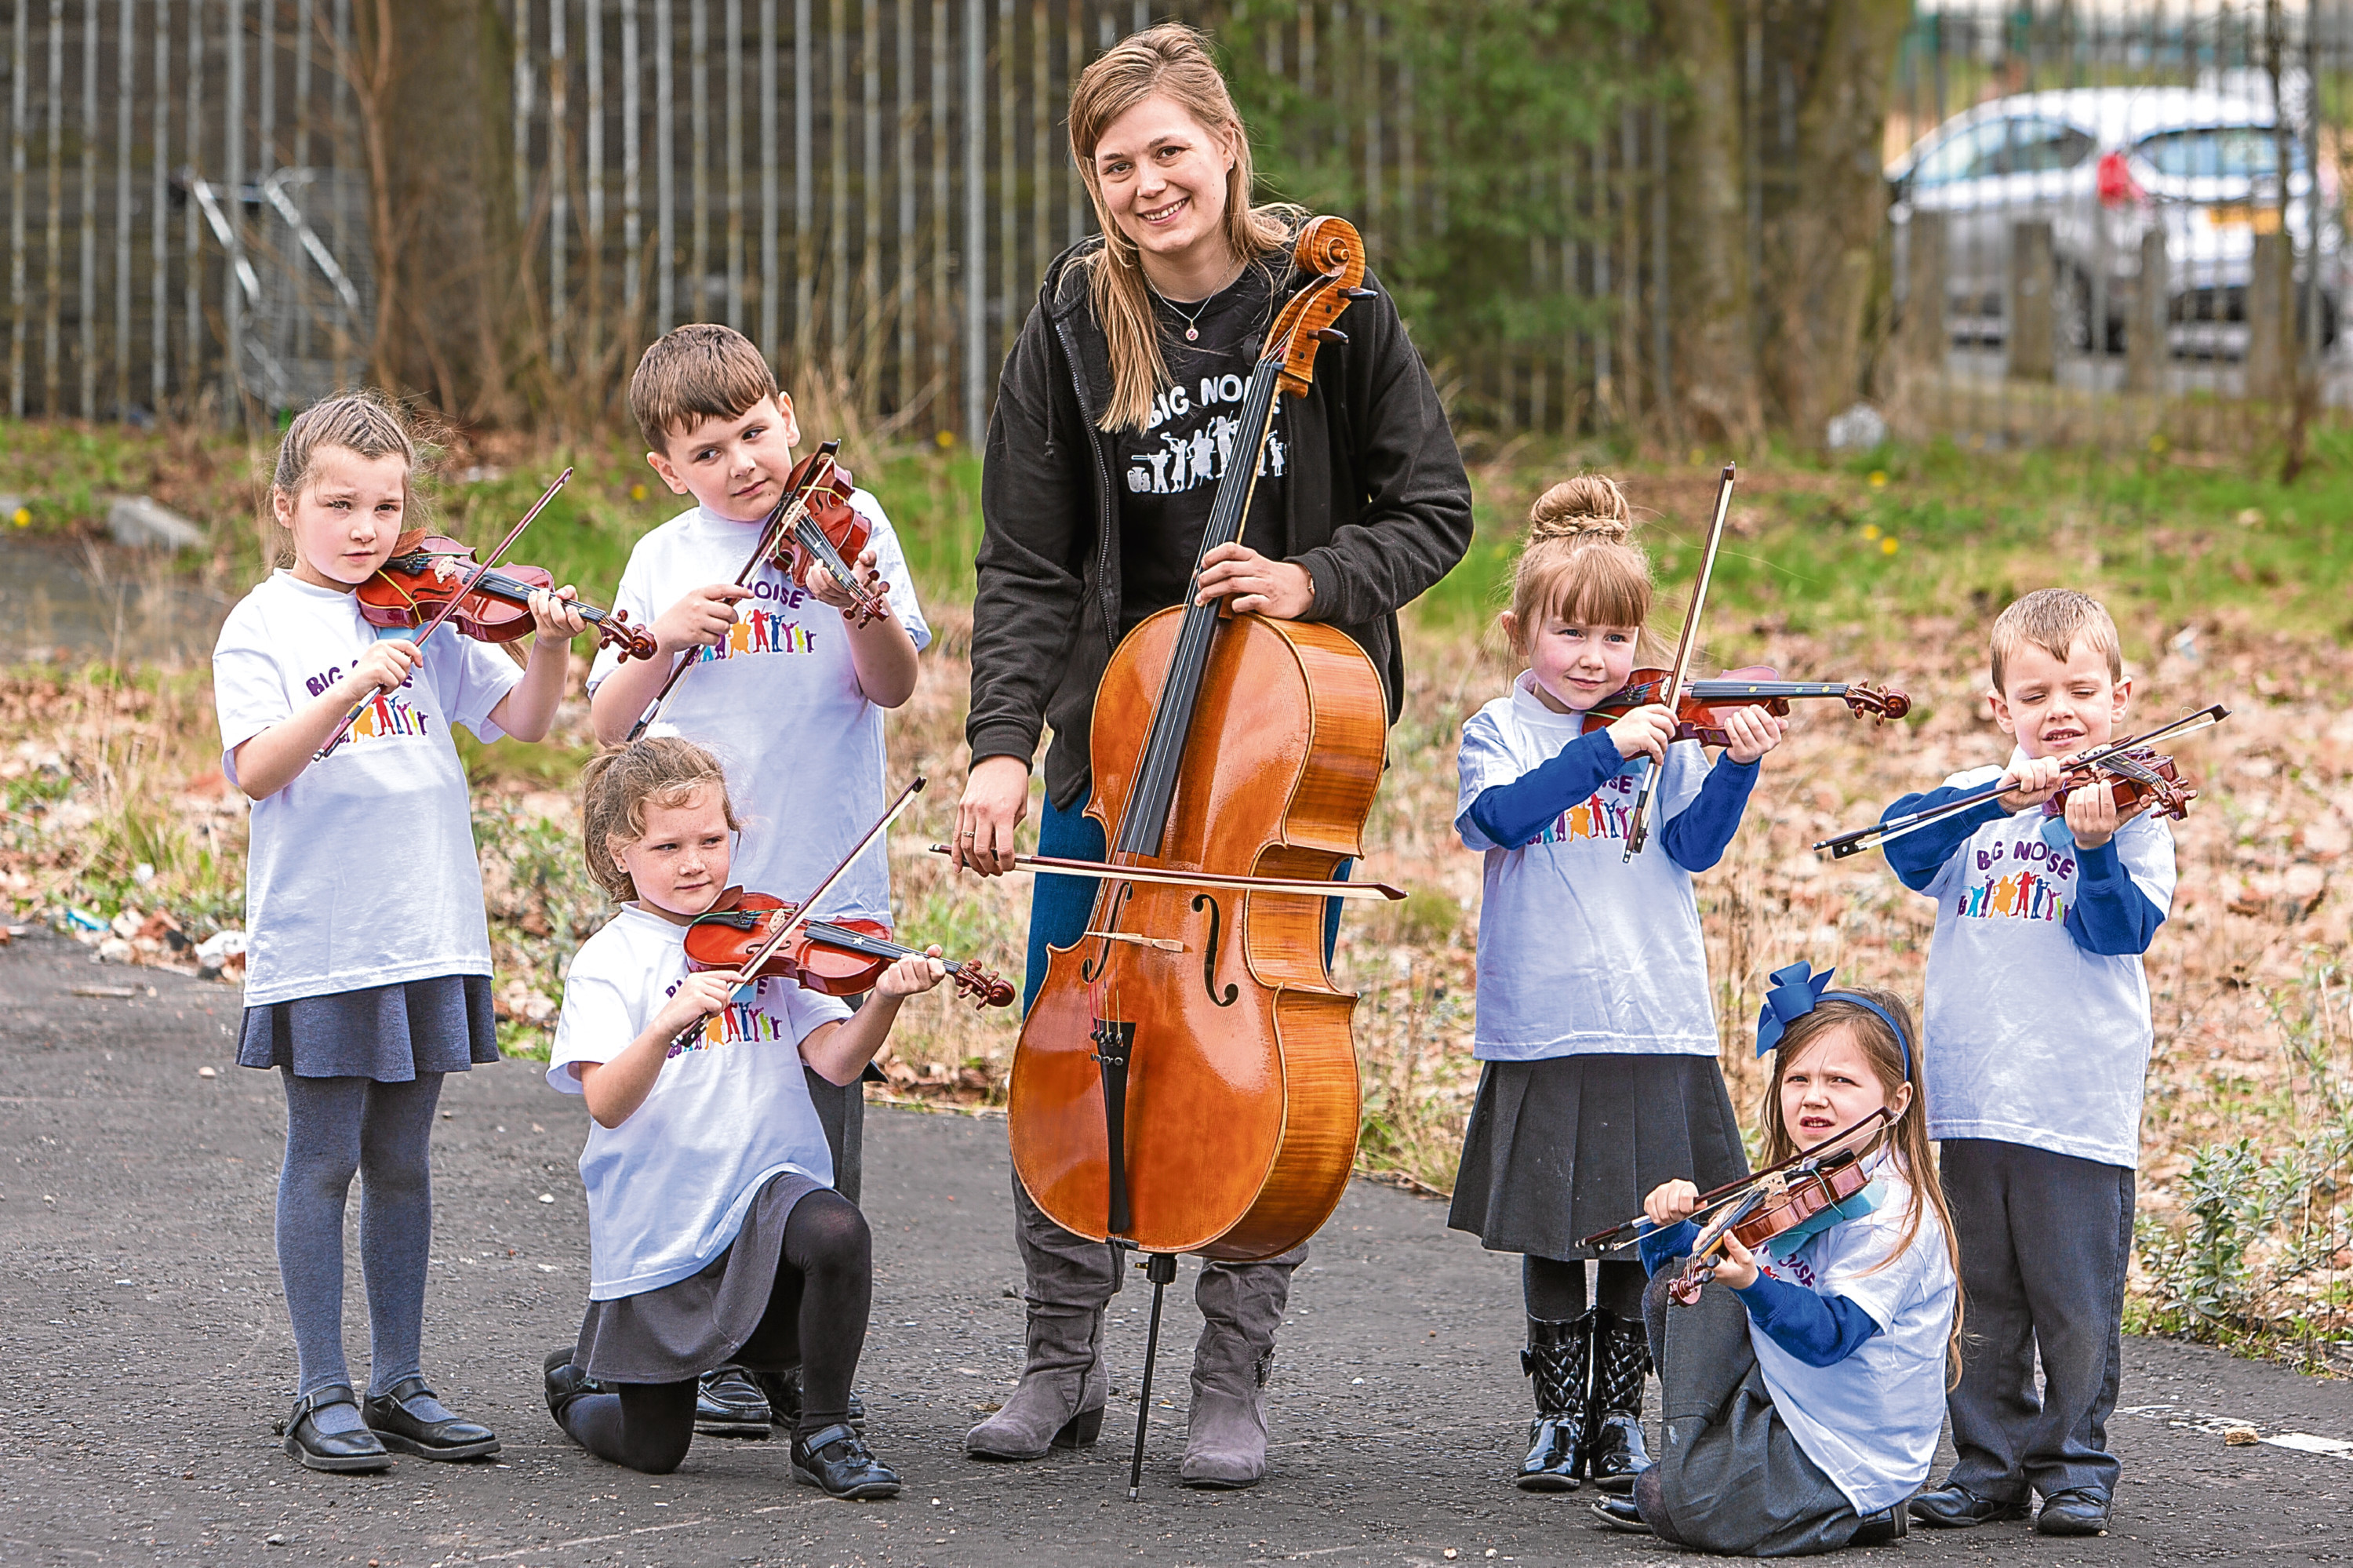 Kids from Claypotts and St Pius play violins with Chellist Jenni Harra. Kids: Caitlyn Bertie, Ryan MacKenzie, Amelia Souter, all Claypotts and Josie Mitchell, Peter Diamind, Maggie McGraw from St Pius